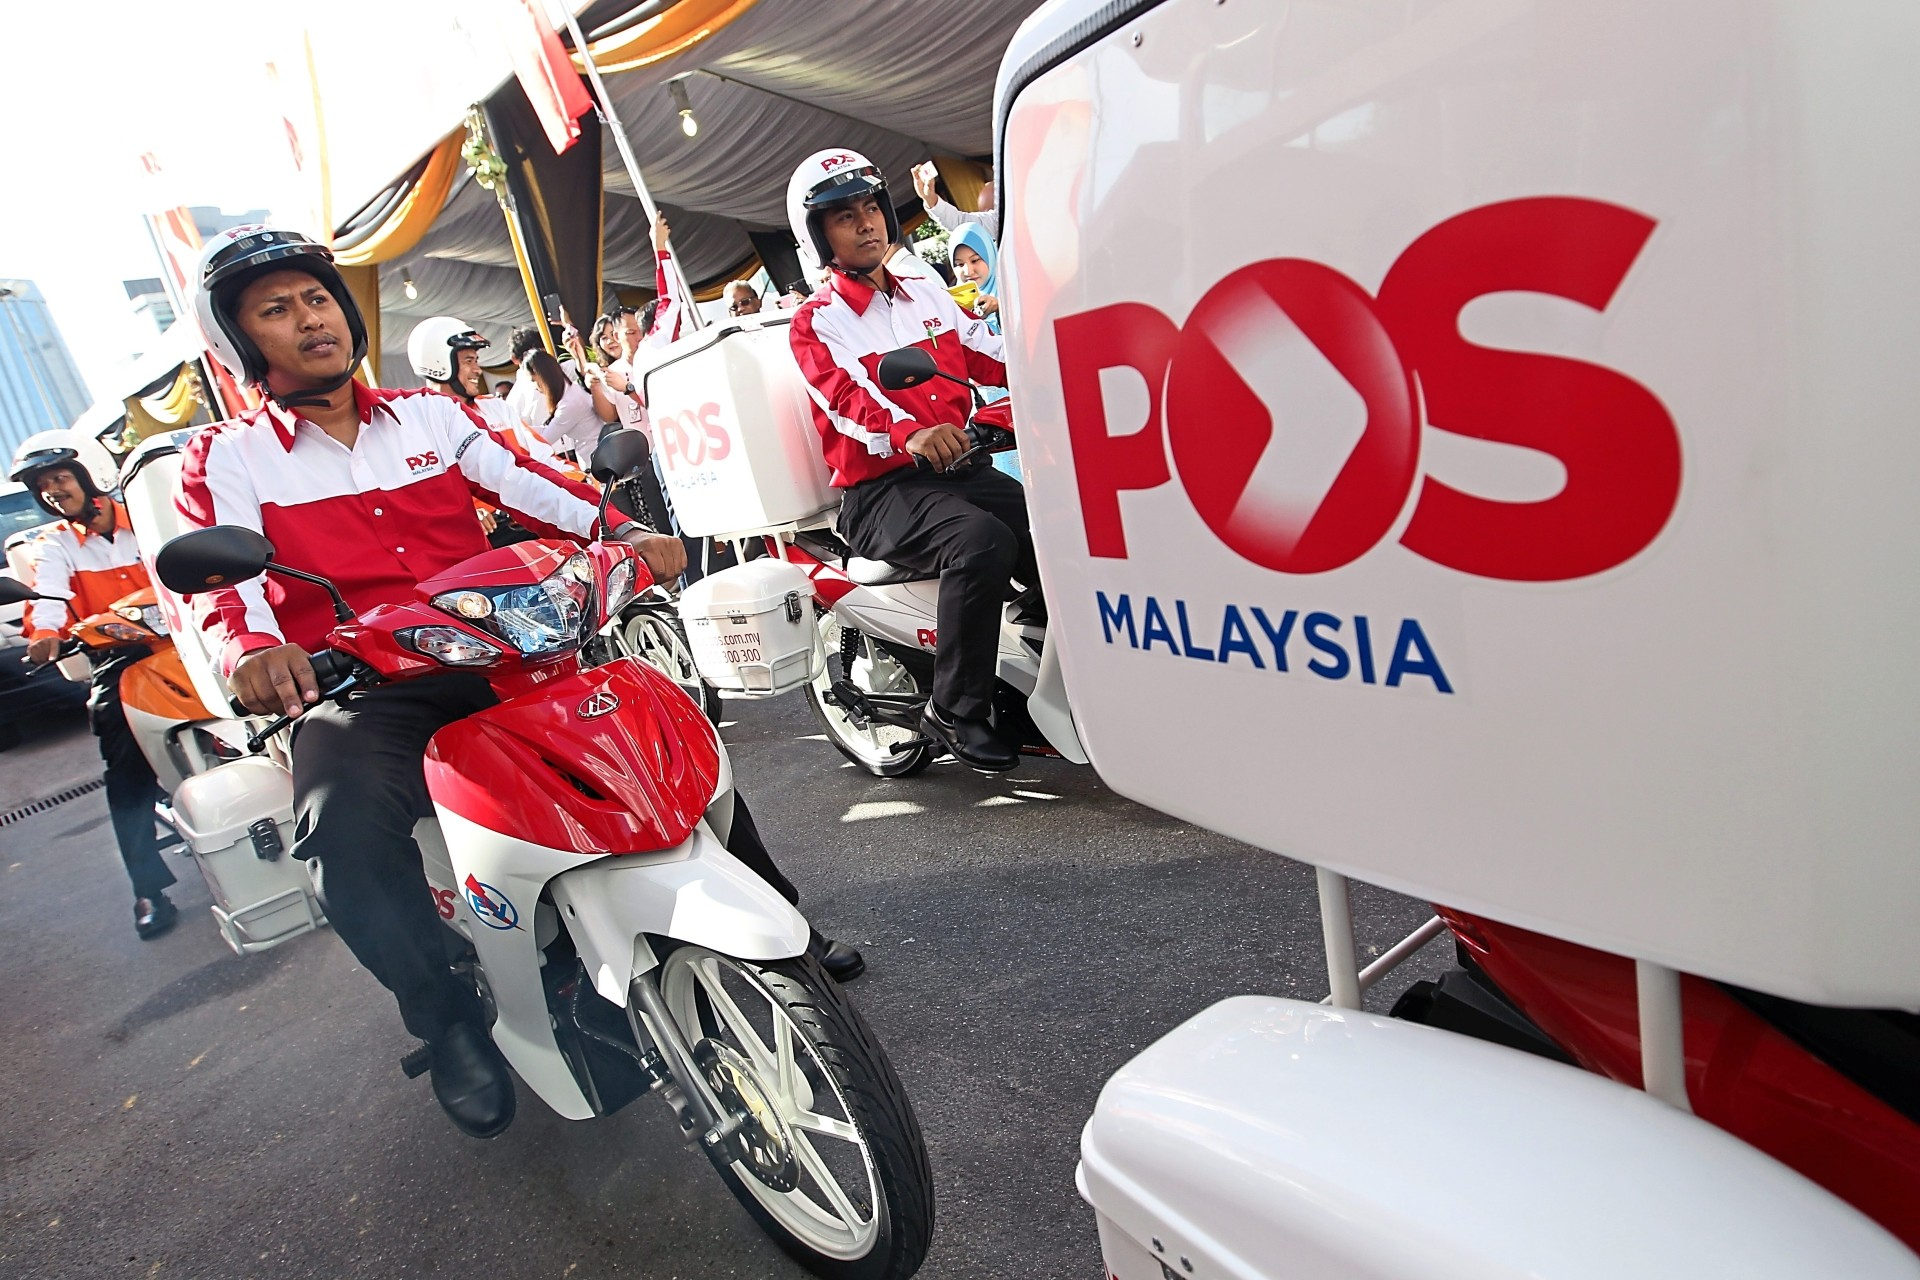 Despite a system shutdown that affected its website and other online services, Pos Malaysia said delivery of items were carried out as usual. — AZMAN GHANI/The Star